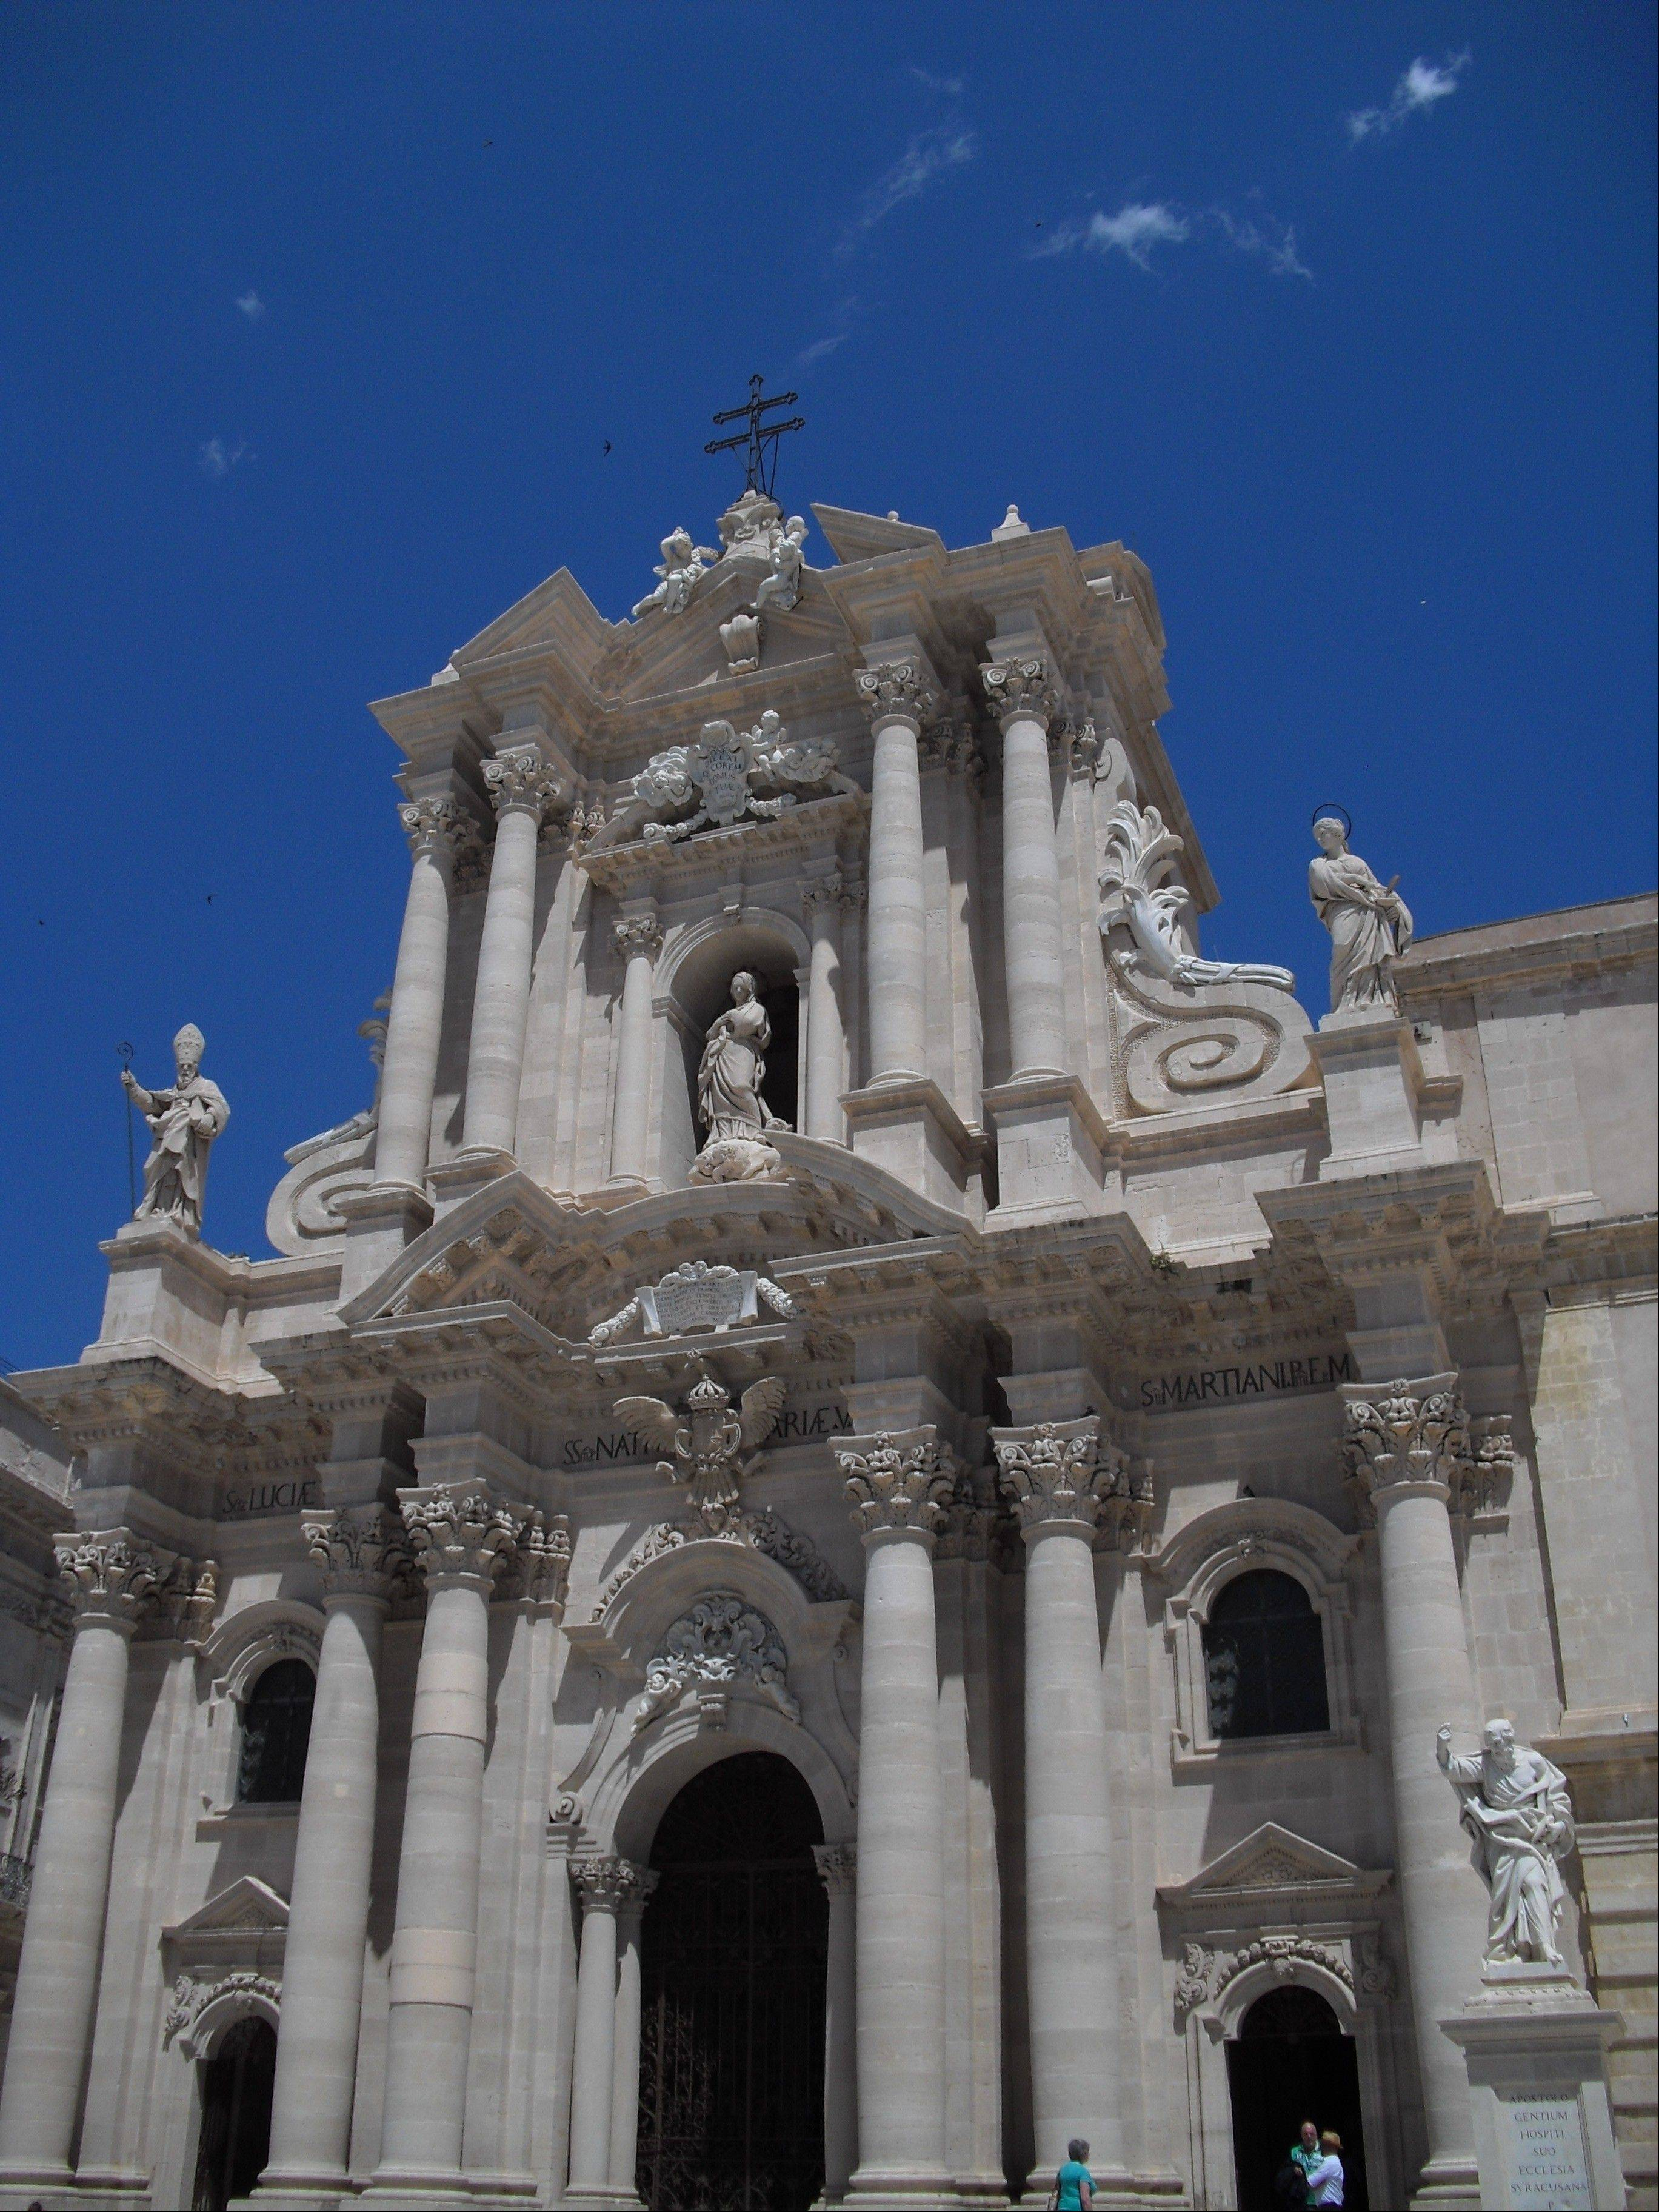 Fans of architecture and history can take in the elaborate baroque facade of the cathedral in the Piazza del Duomo on the Sicilian island of Ortygia. The cathedral's origins as a Greek temple to the goddess Athena are clear by the Doric columns that peek through the exterior and interior of the building.